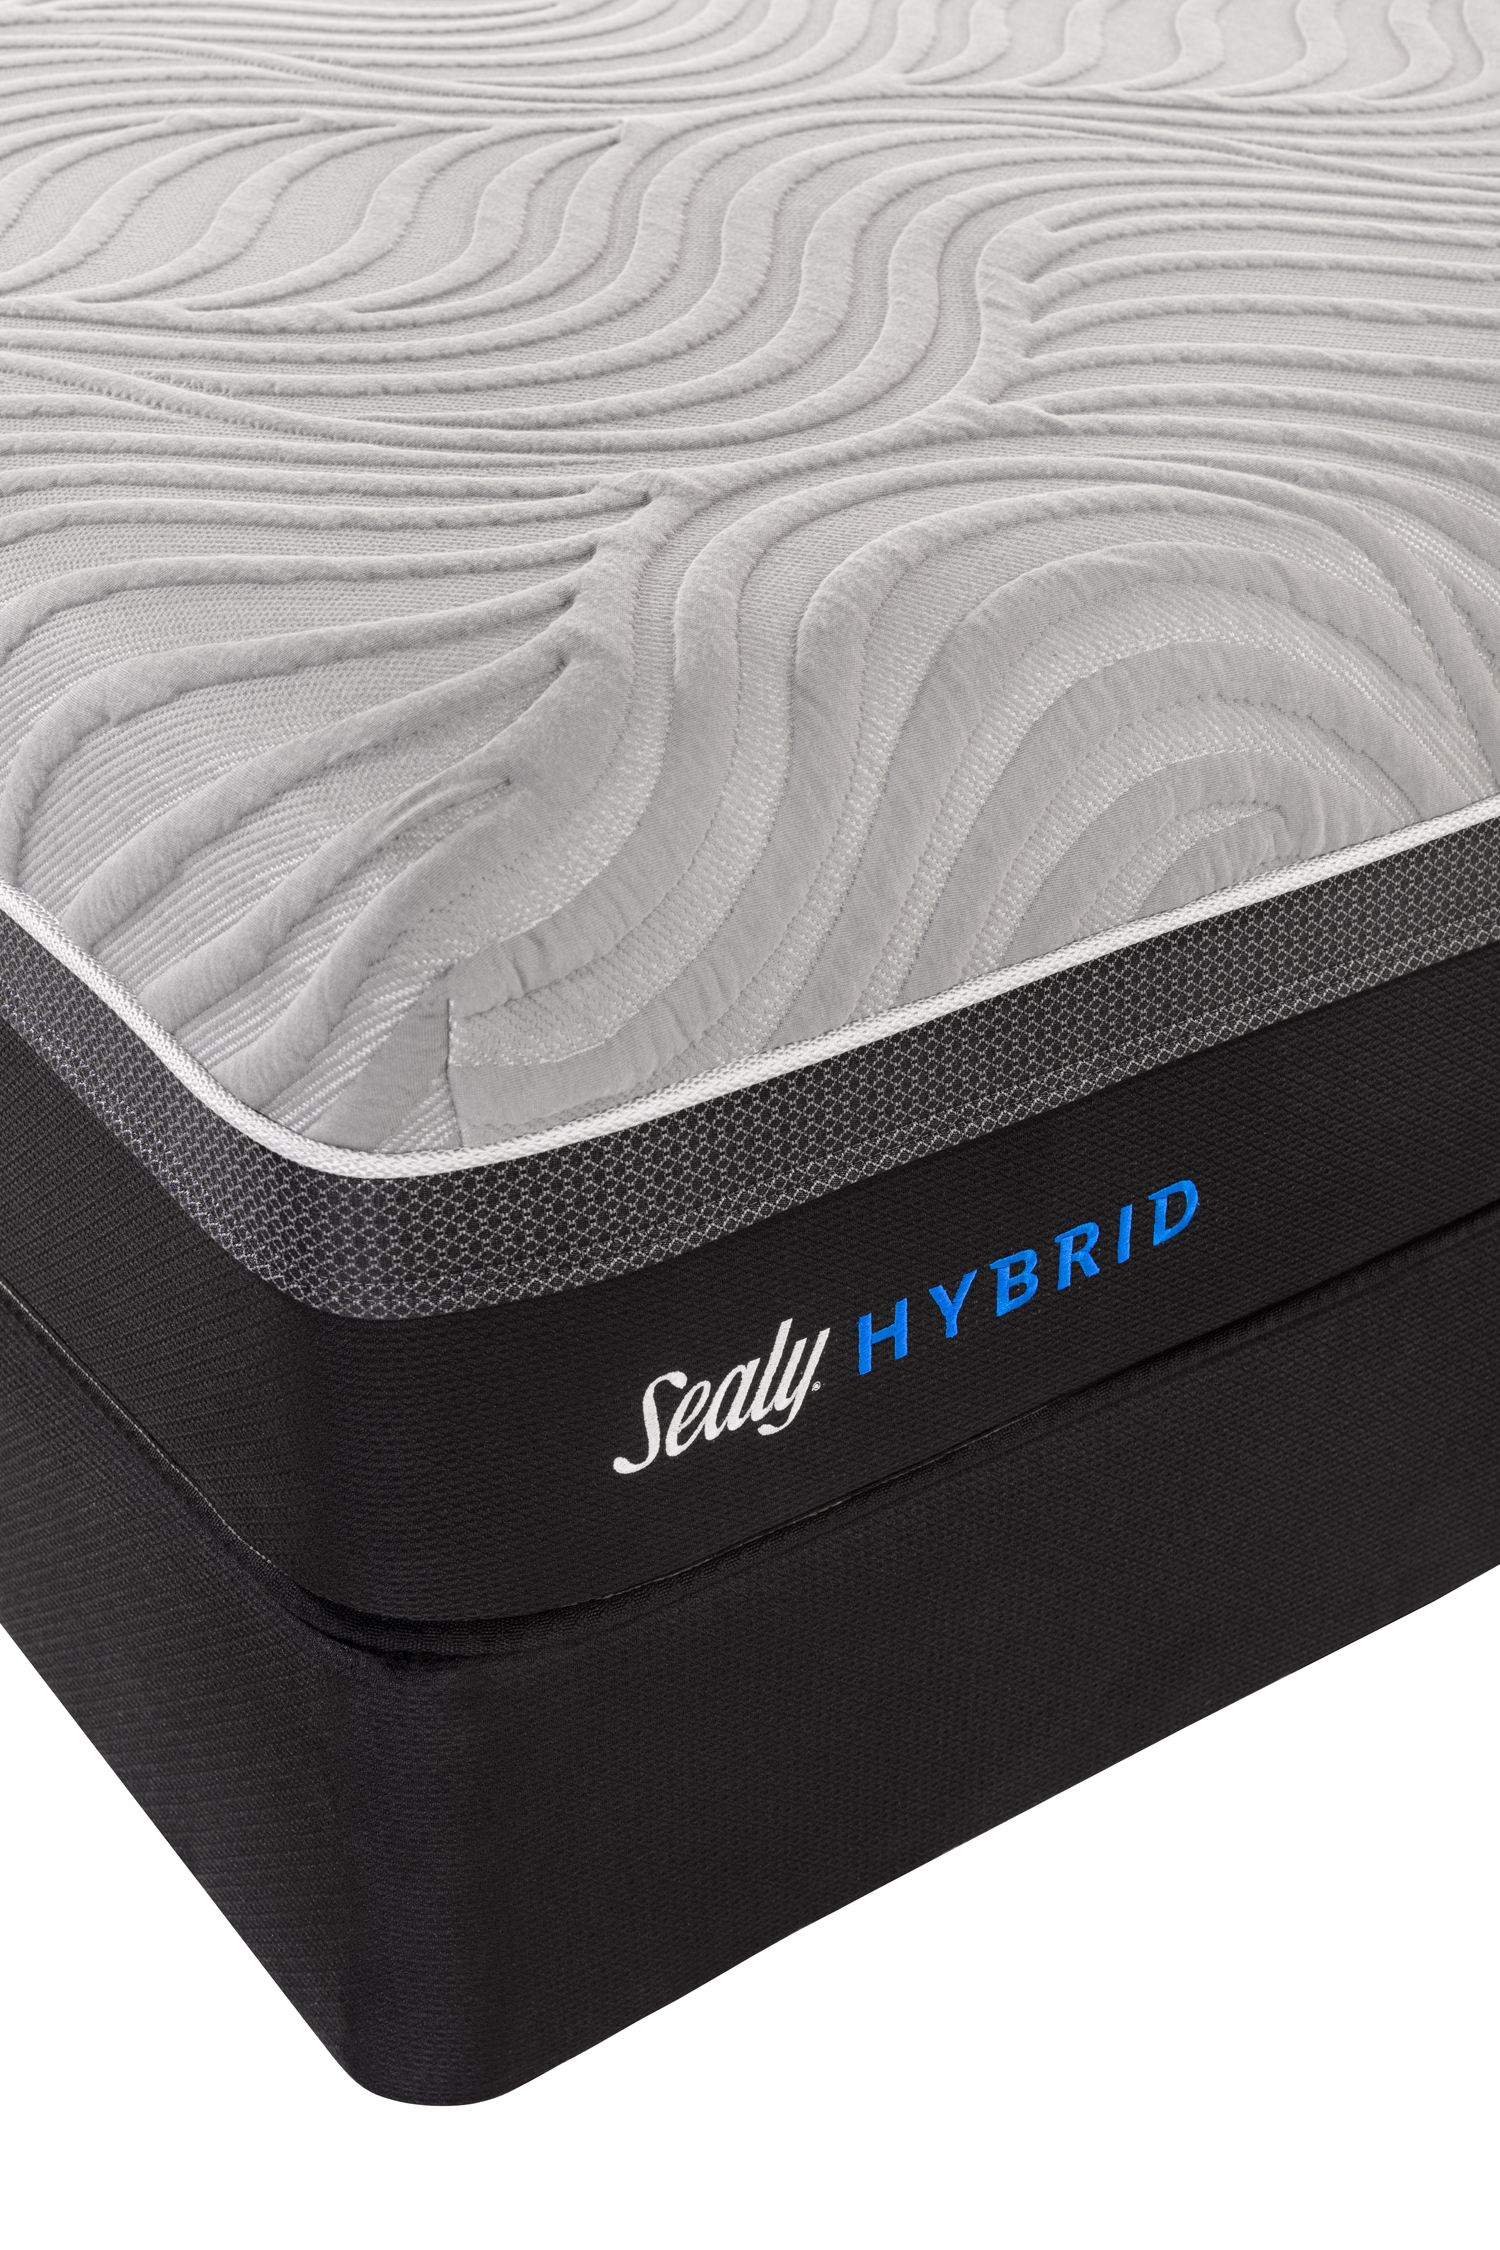 sealy posturepedic hybrid series copper ii cushion firm mattress reviews goodbed com